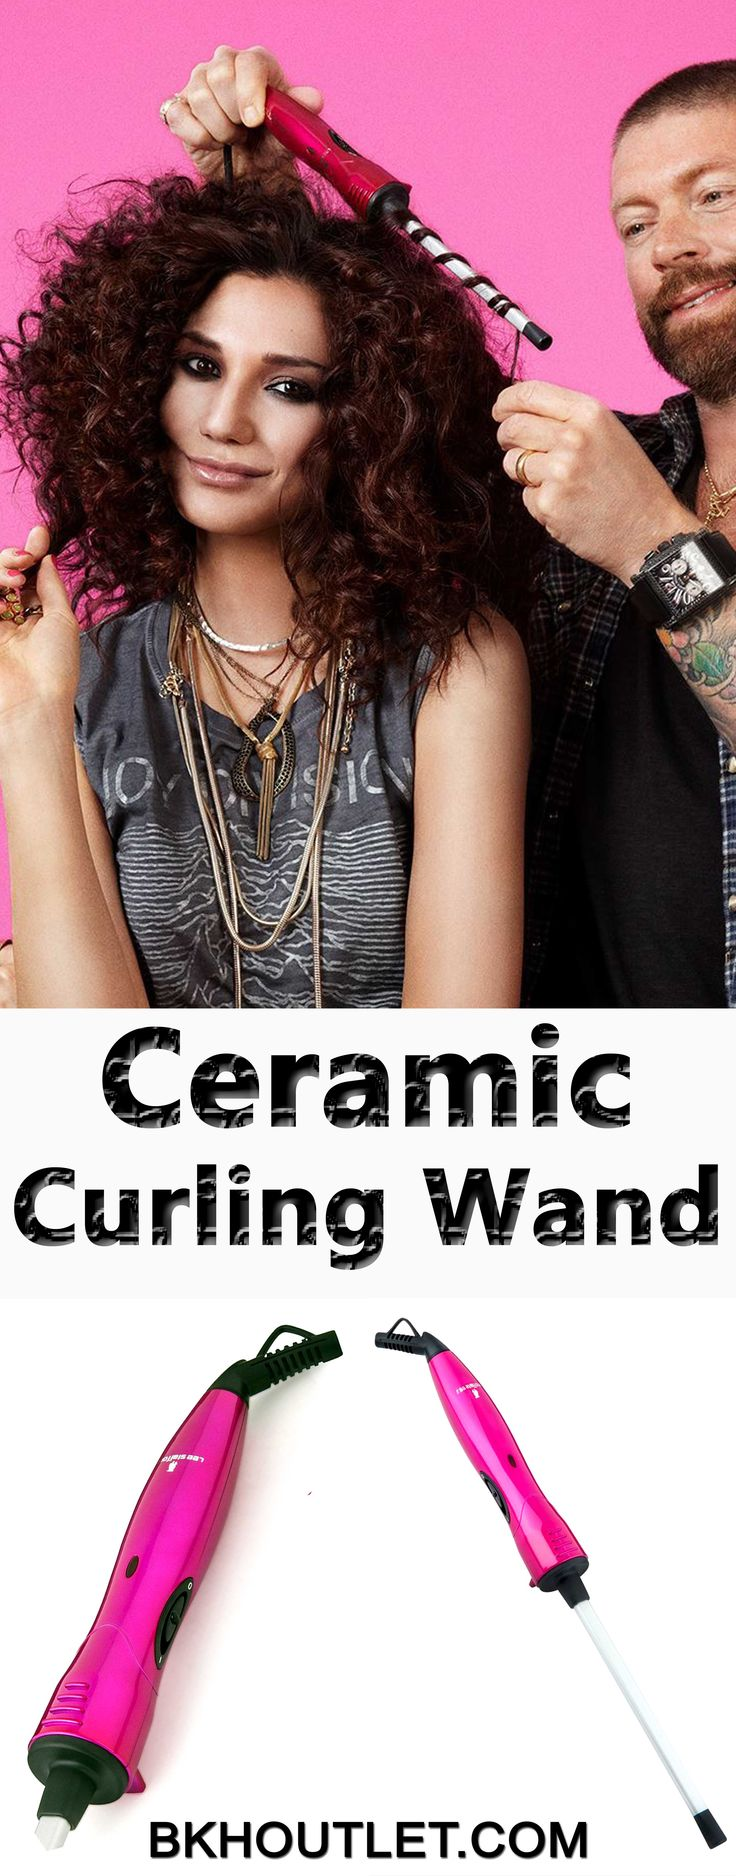 Now You Can Have Salon Quality Curls Without Spending a Fortune! Get tight corkscrew curls that last for days, even if your hair doesn't normally hold curls. Curls that look like you've come straight from the catwalk. │hair care │hair care products │curly hair │curling wands #haircare #haircareproducts #curlyhair #curlingwands